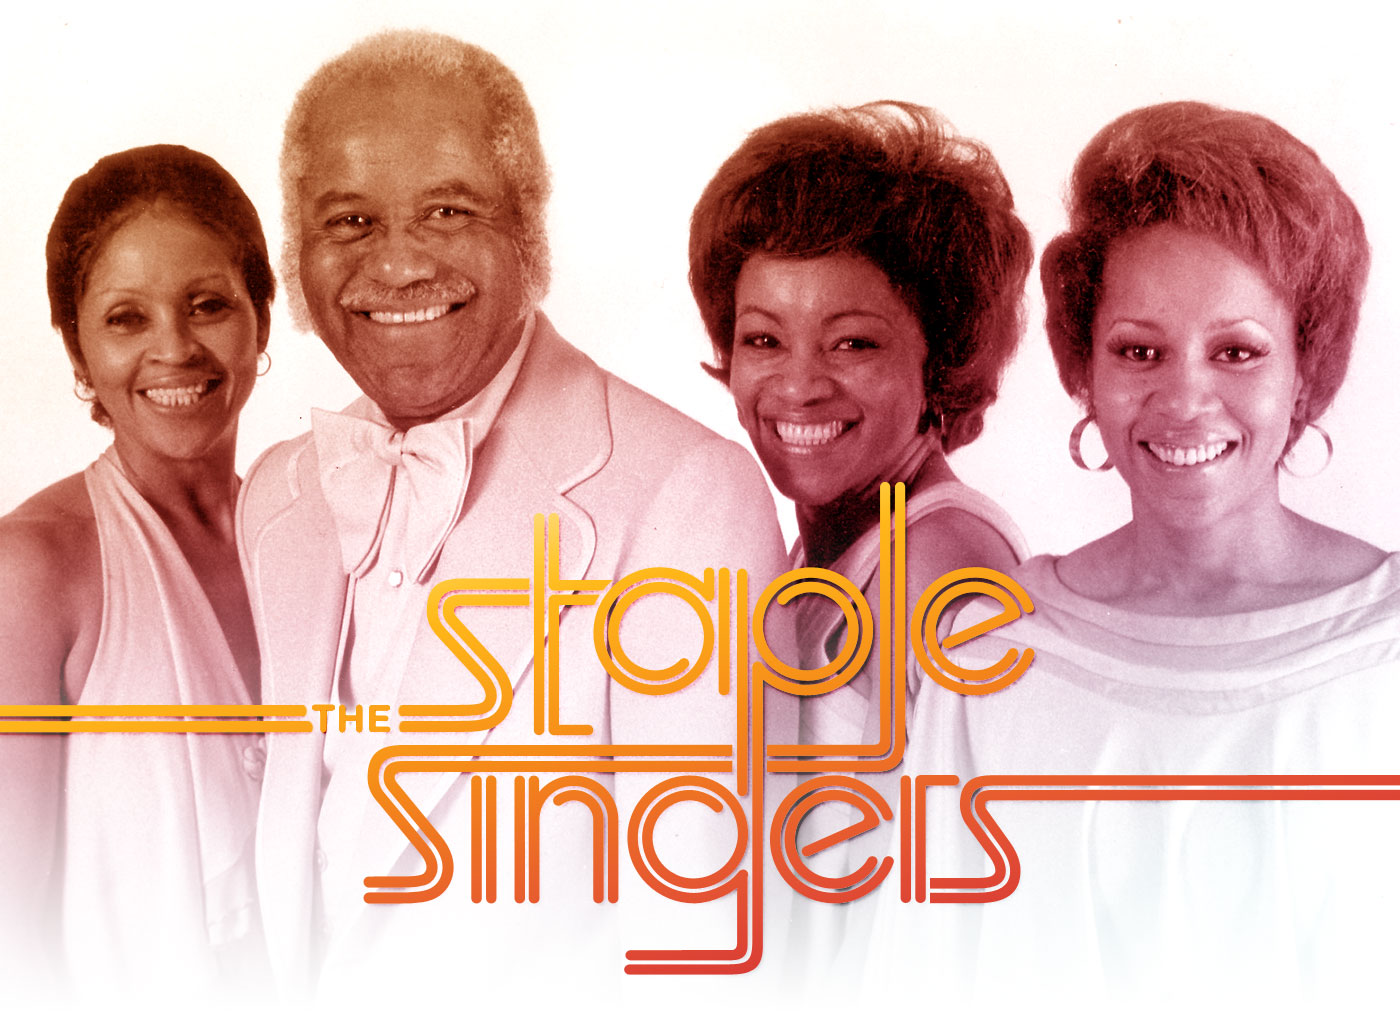 The Staple Singers, early 1970s